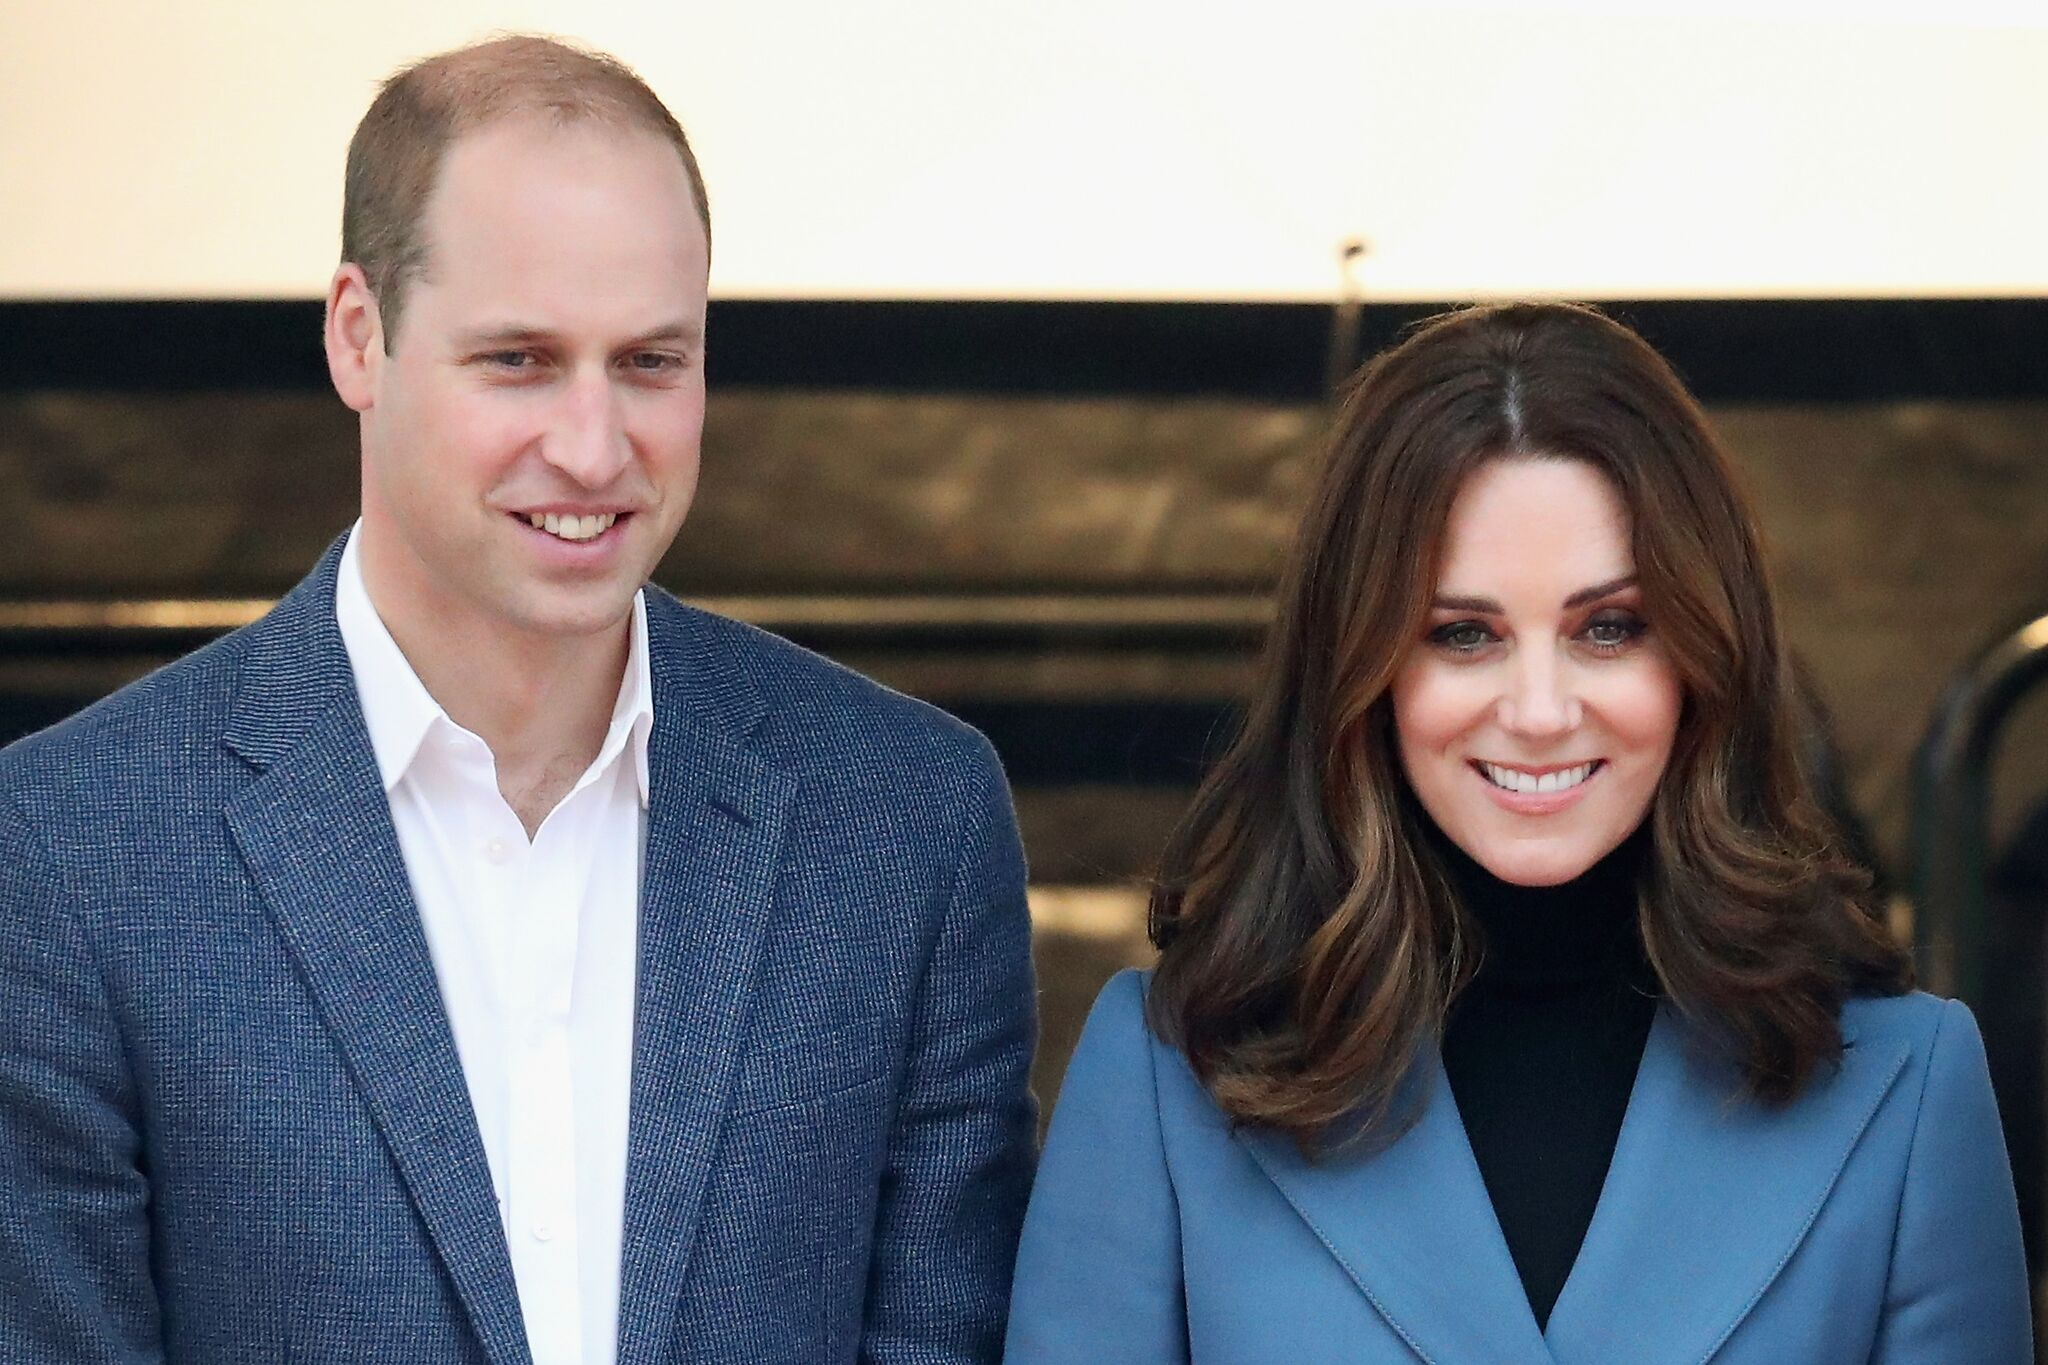 Prince William and Kate Middleton attend the Coach Core graduation ceremony at The London Stadium on October 18, 2017 in London, England | Photo: Getty Images